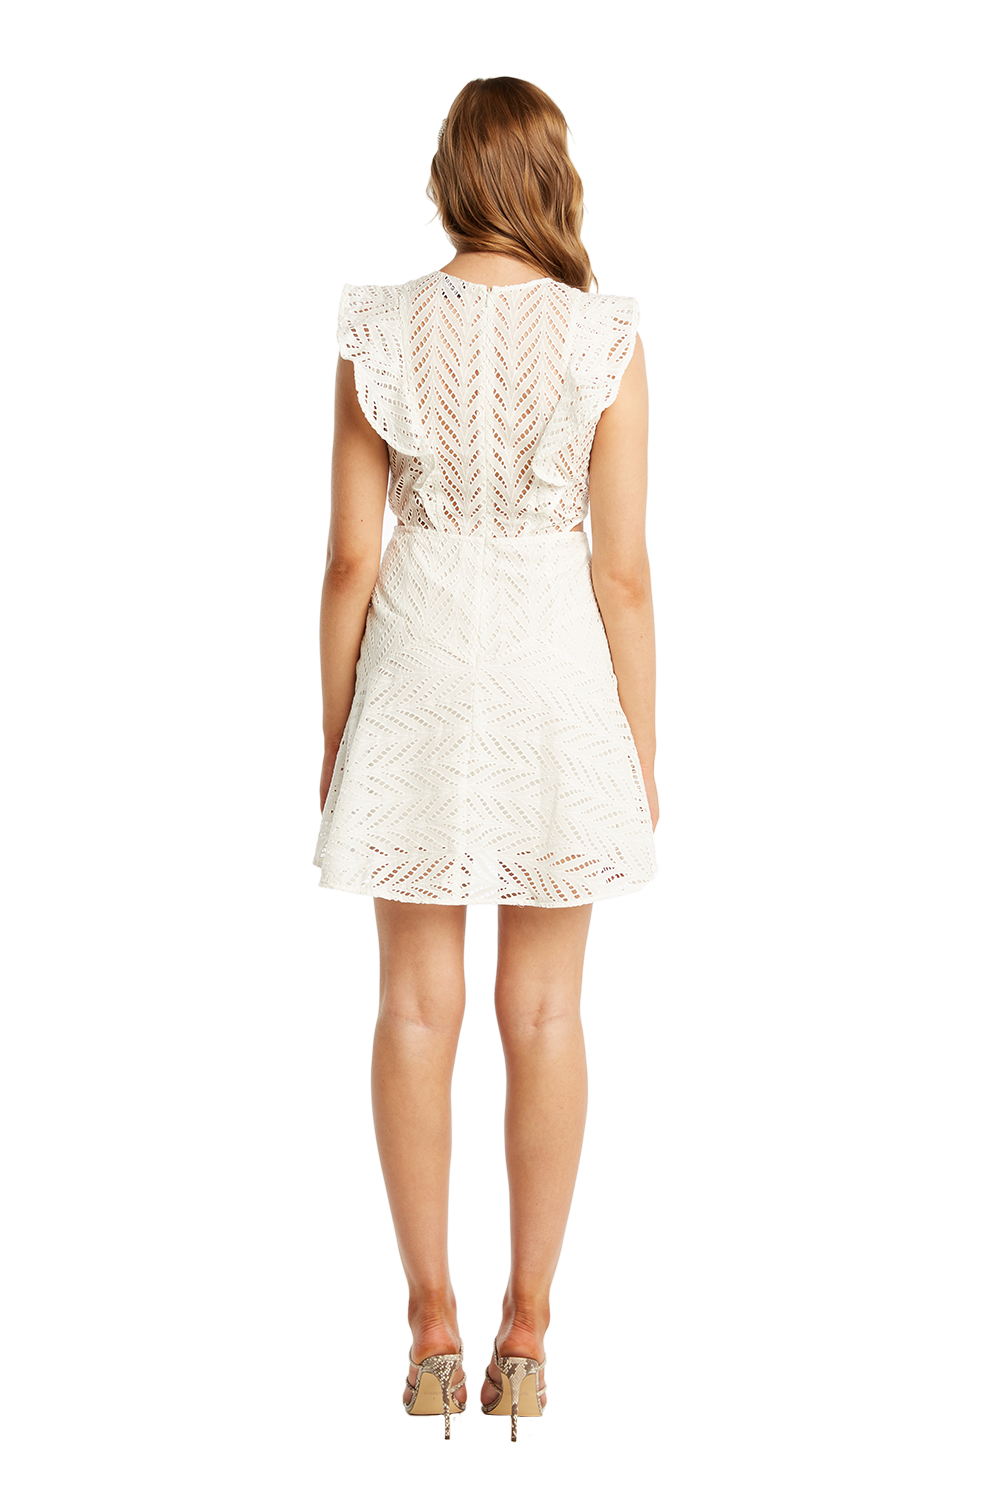 KIRA FRILL DRESS in colour CLOUD DANCER